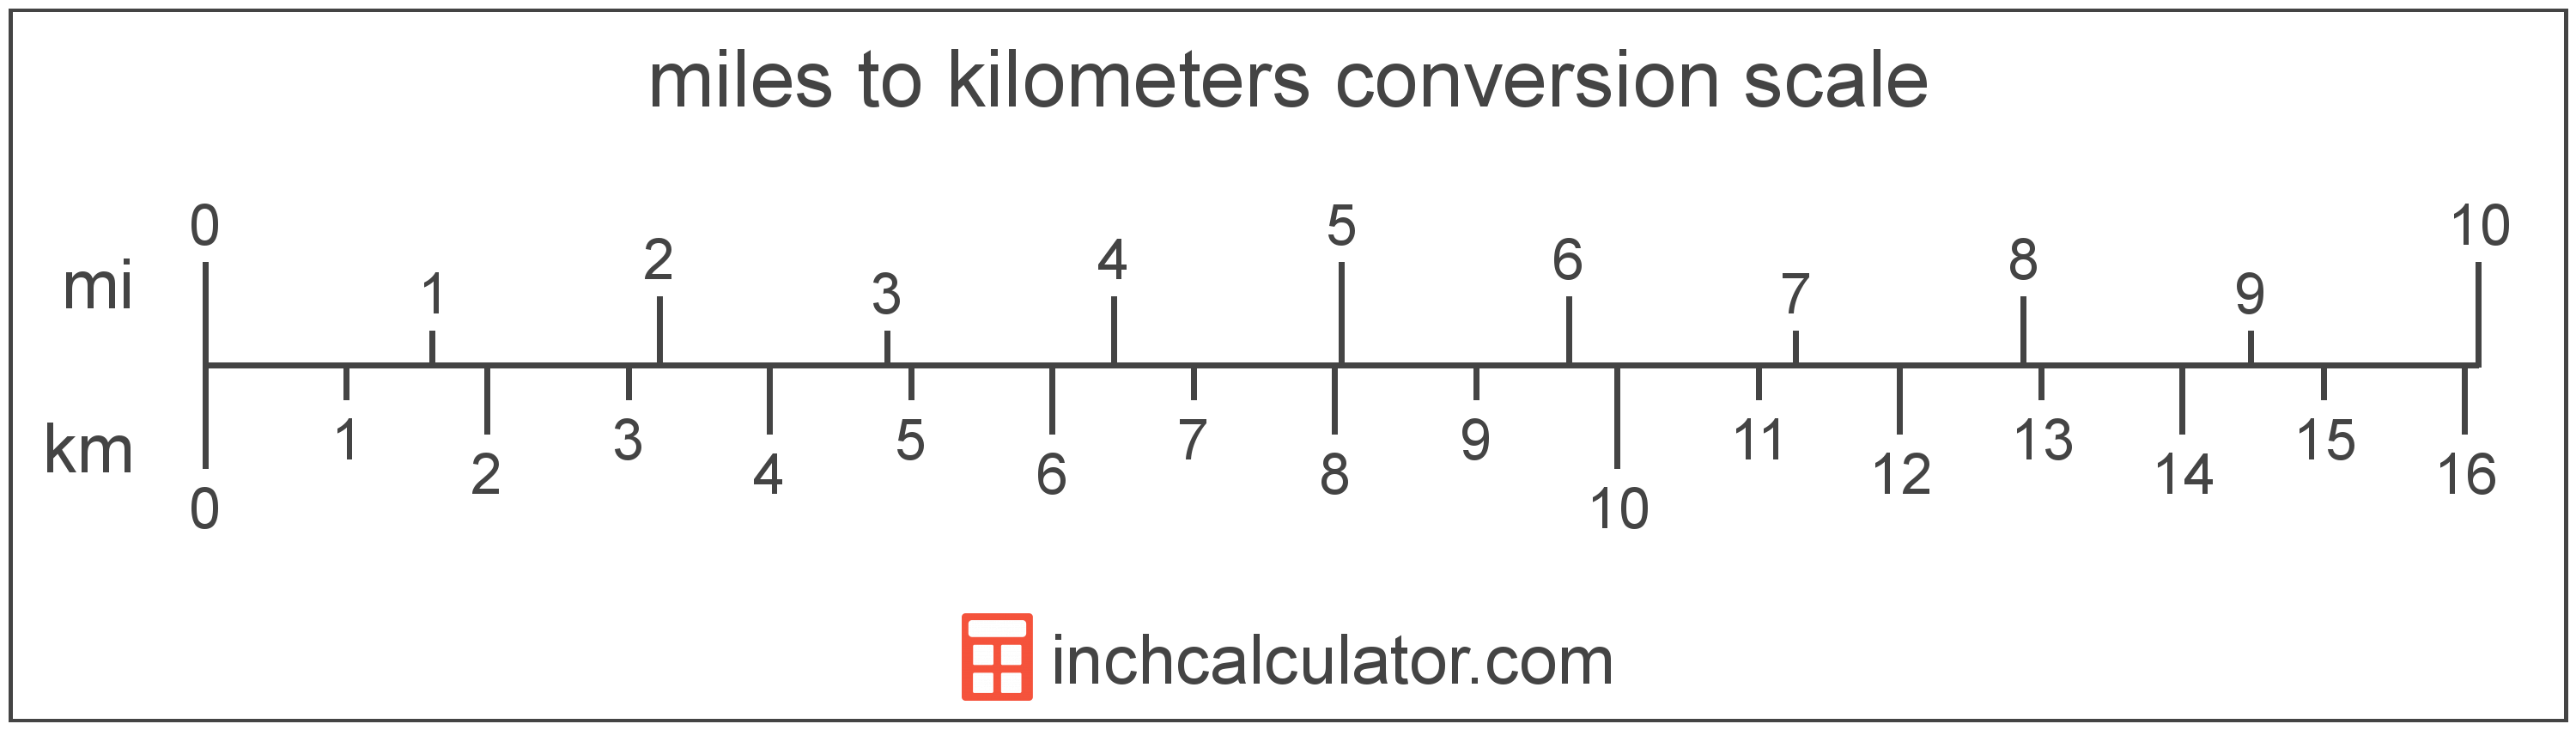 nanometers and kilometers are units used to measure length